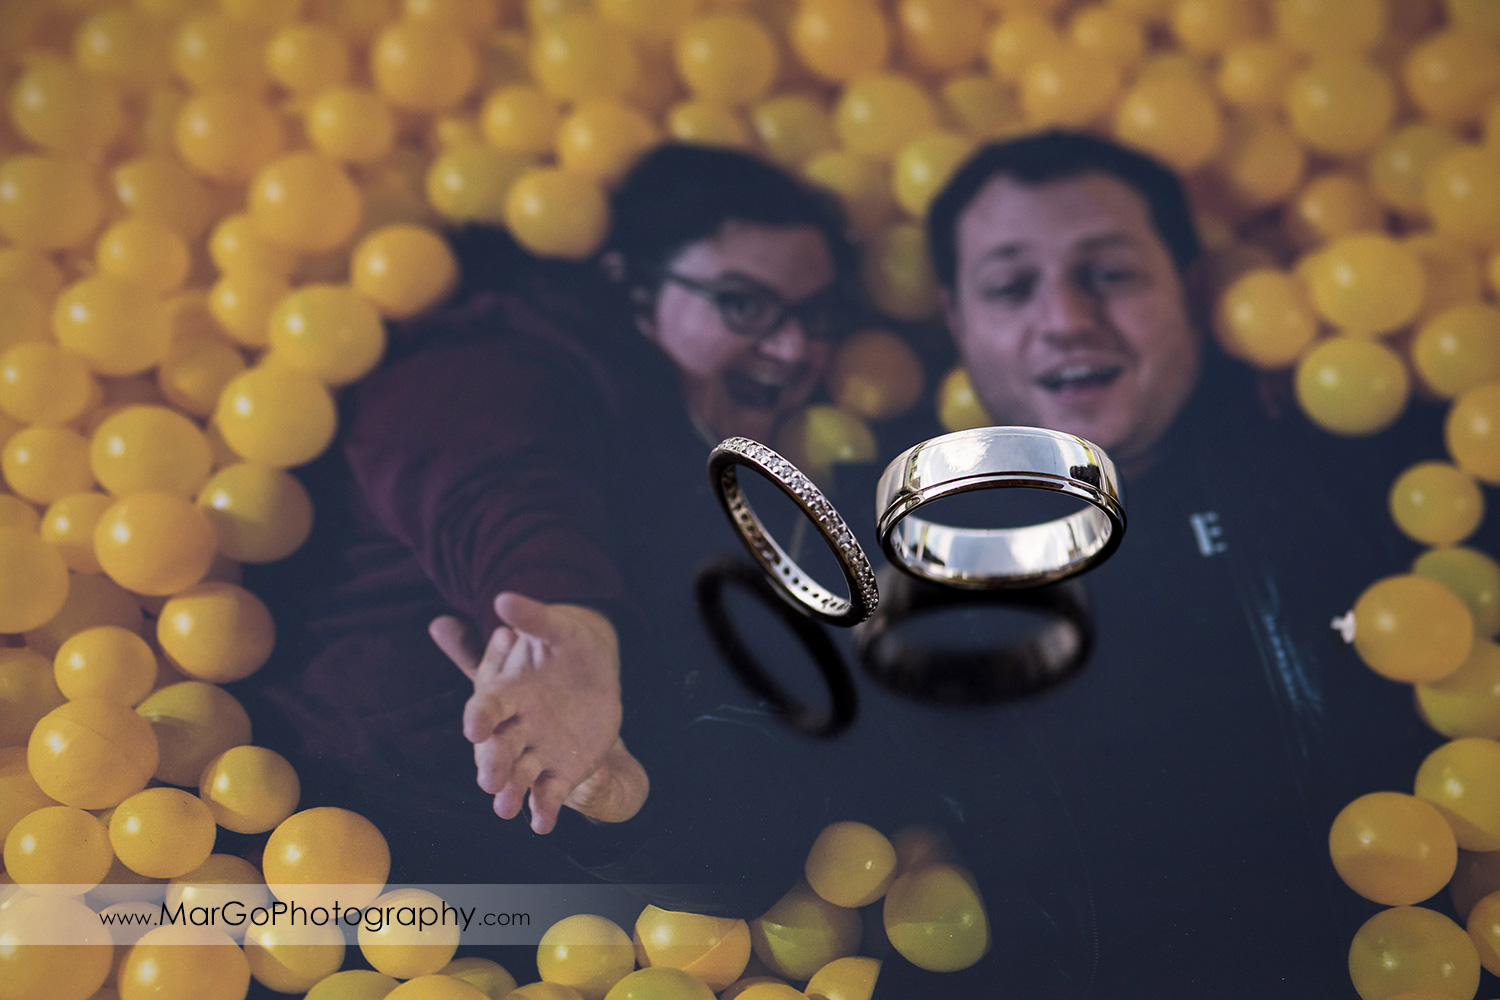 wedding rings on couple photo at Livermore Garre Vineyard and Winery